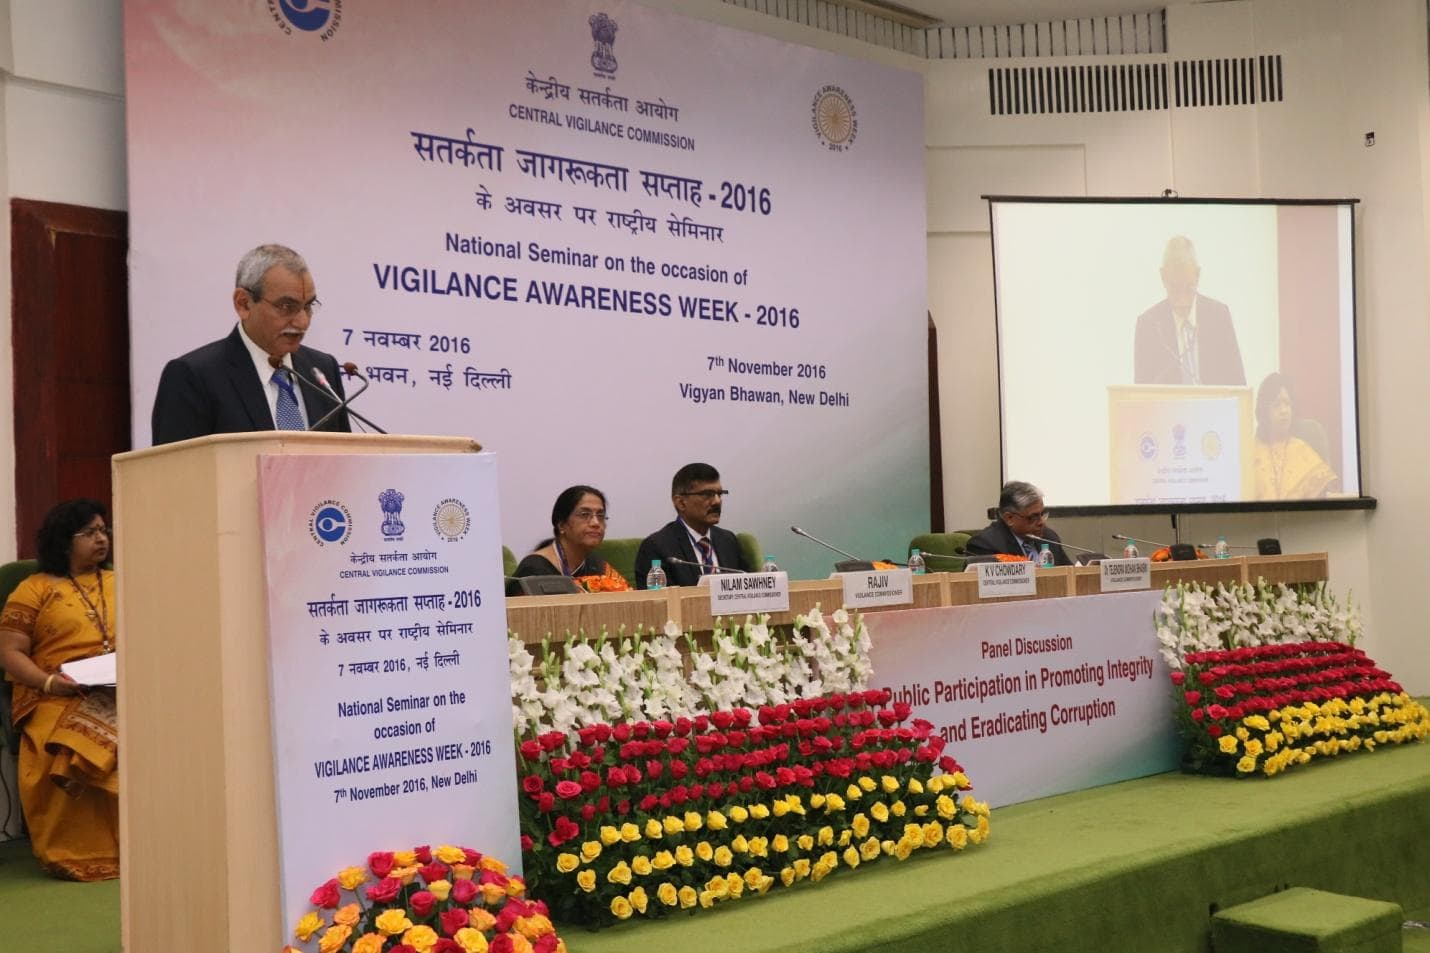 National Seminar VIGILANCE AWARENESS WEEK-2016 photo 9